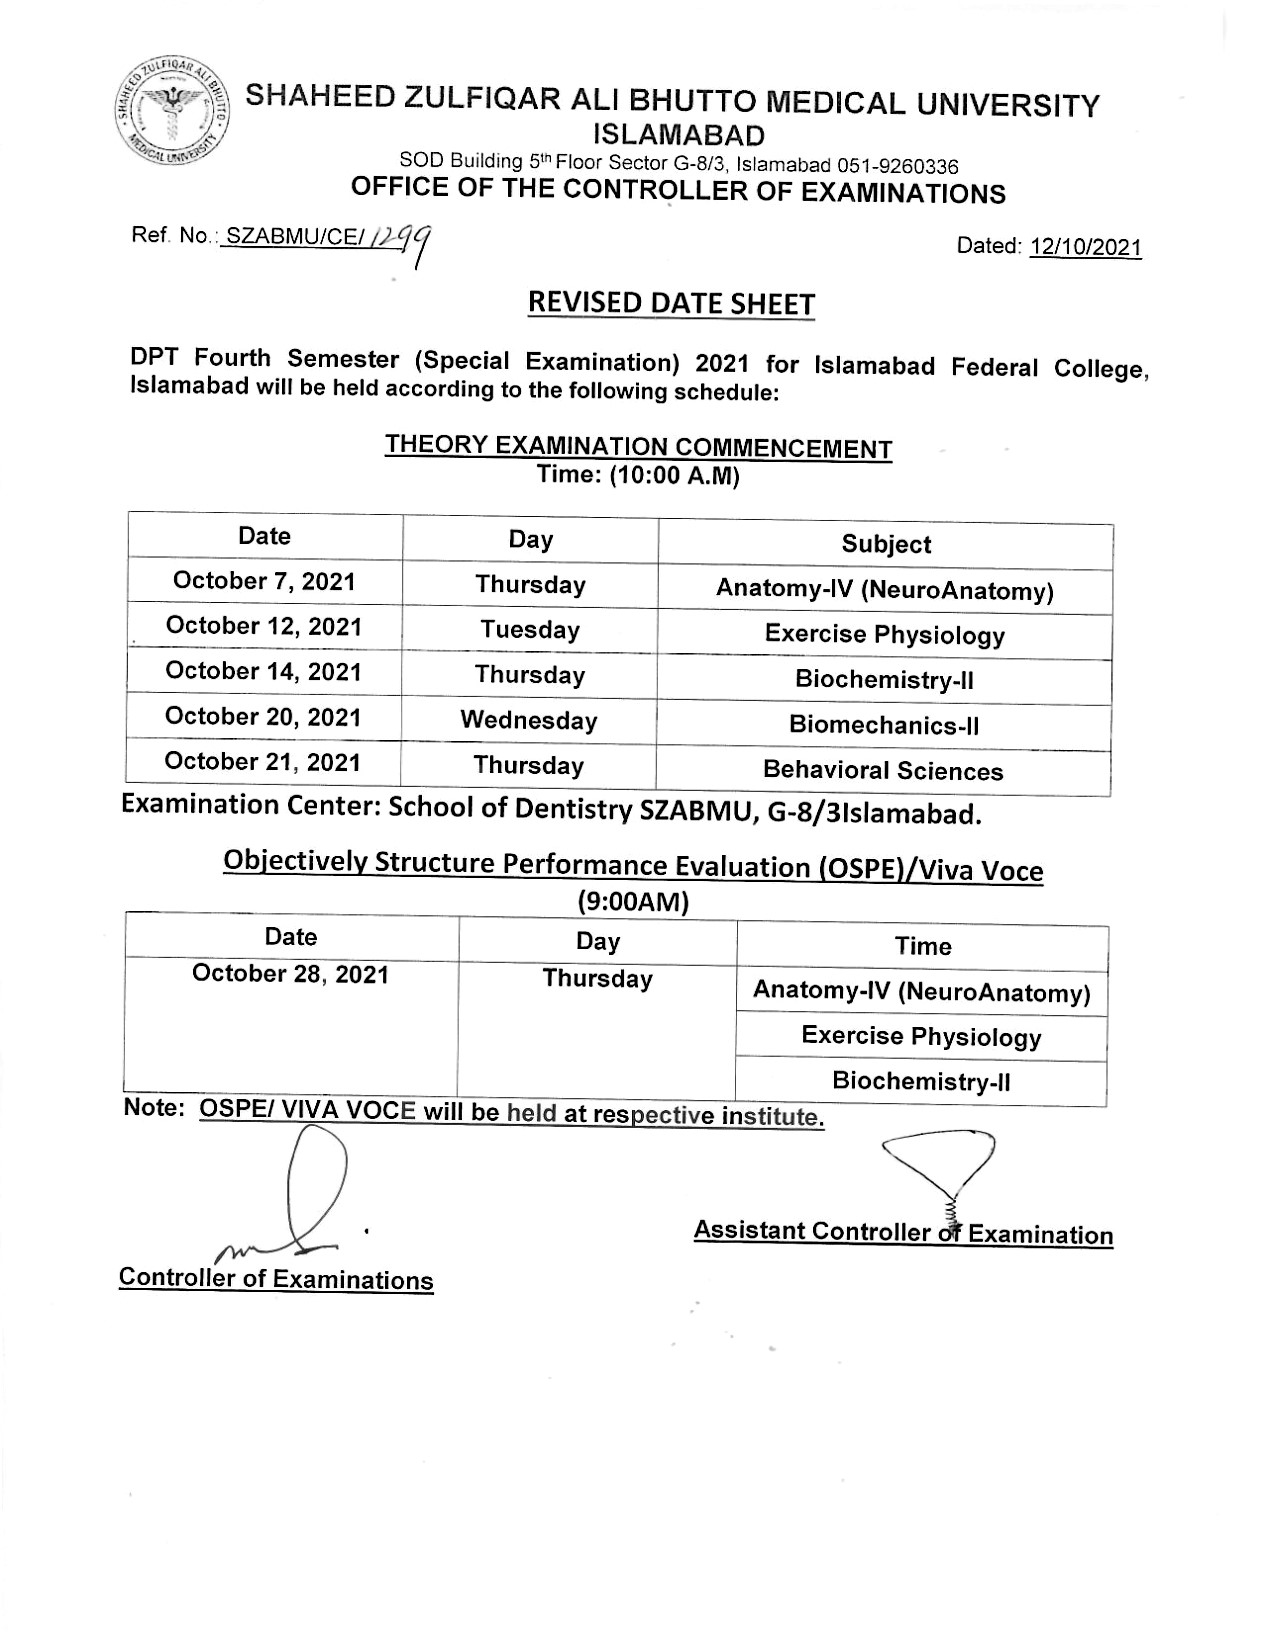 Revised Date Sheet - DPT Fourth Semester (Special Examination) 2021